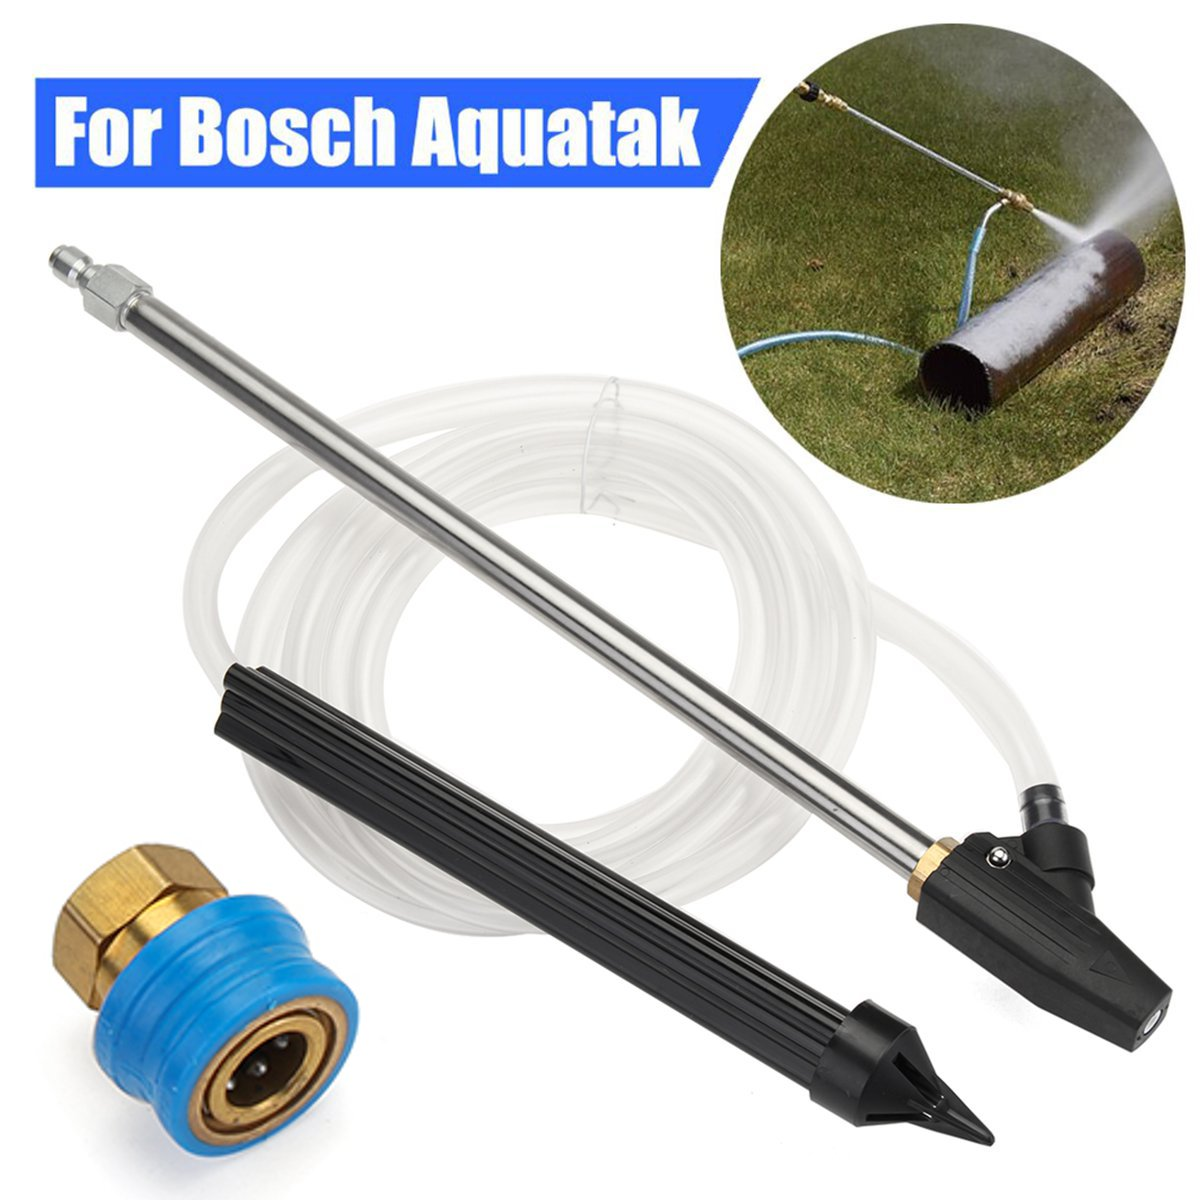 High Pressure Washer Sand Wet Sand blasting Kit & Pressure Washer Steam Cleaner Quick Release Compact 1/4F Coupling